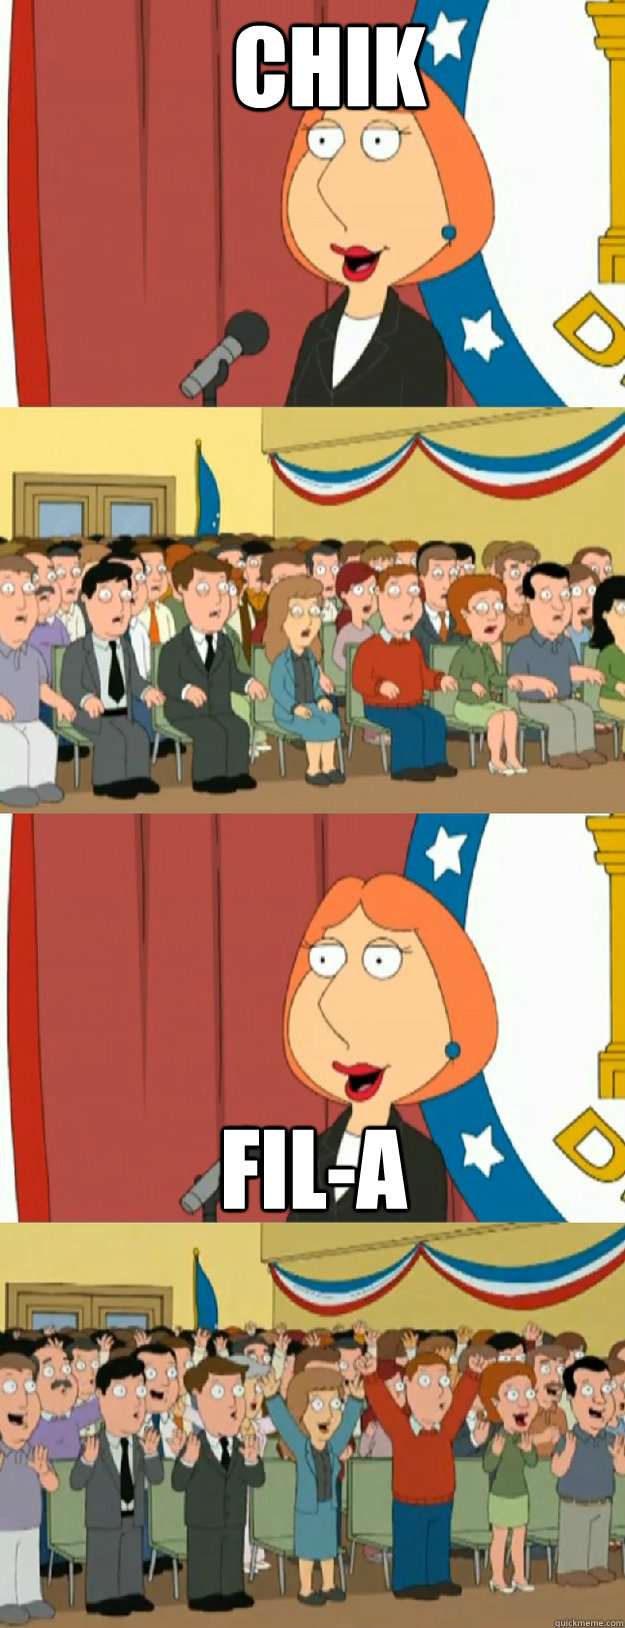 Think, that lois griffin sexy